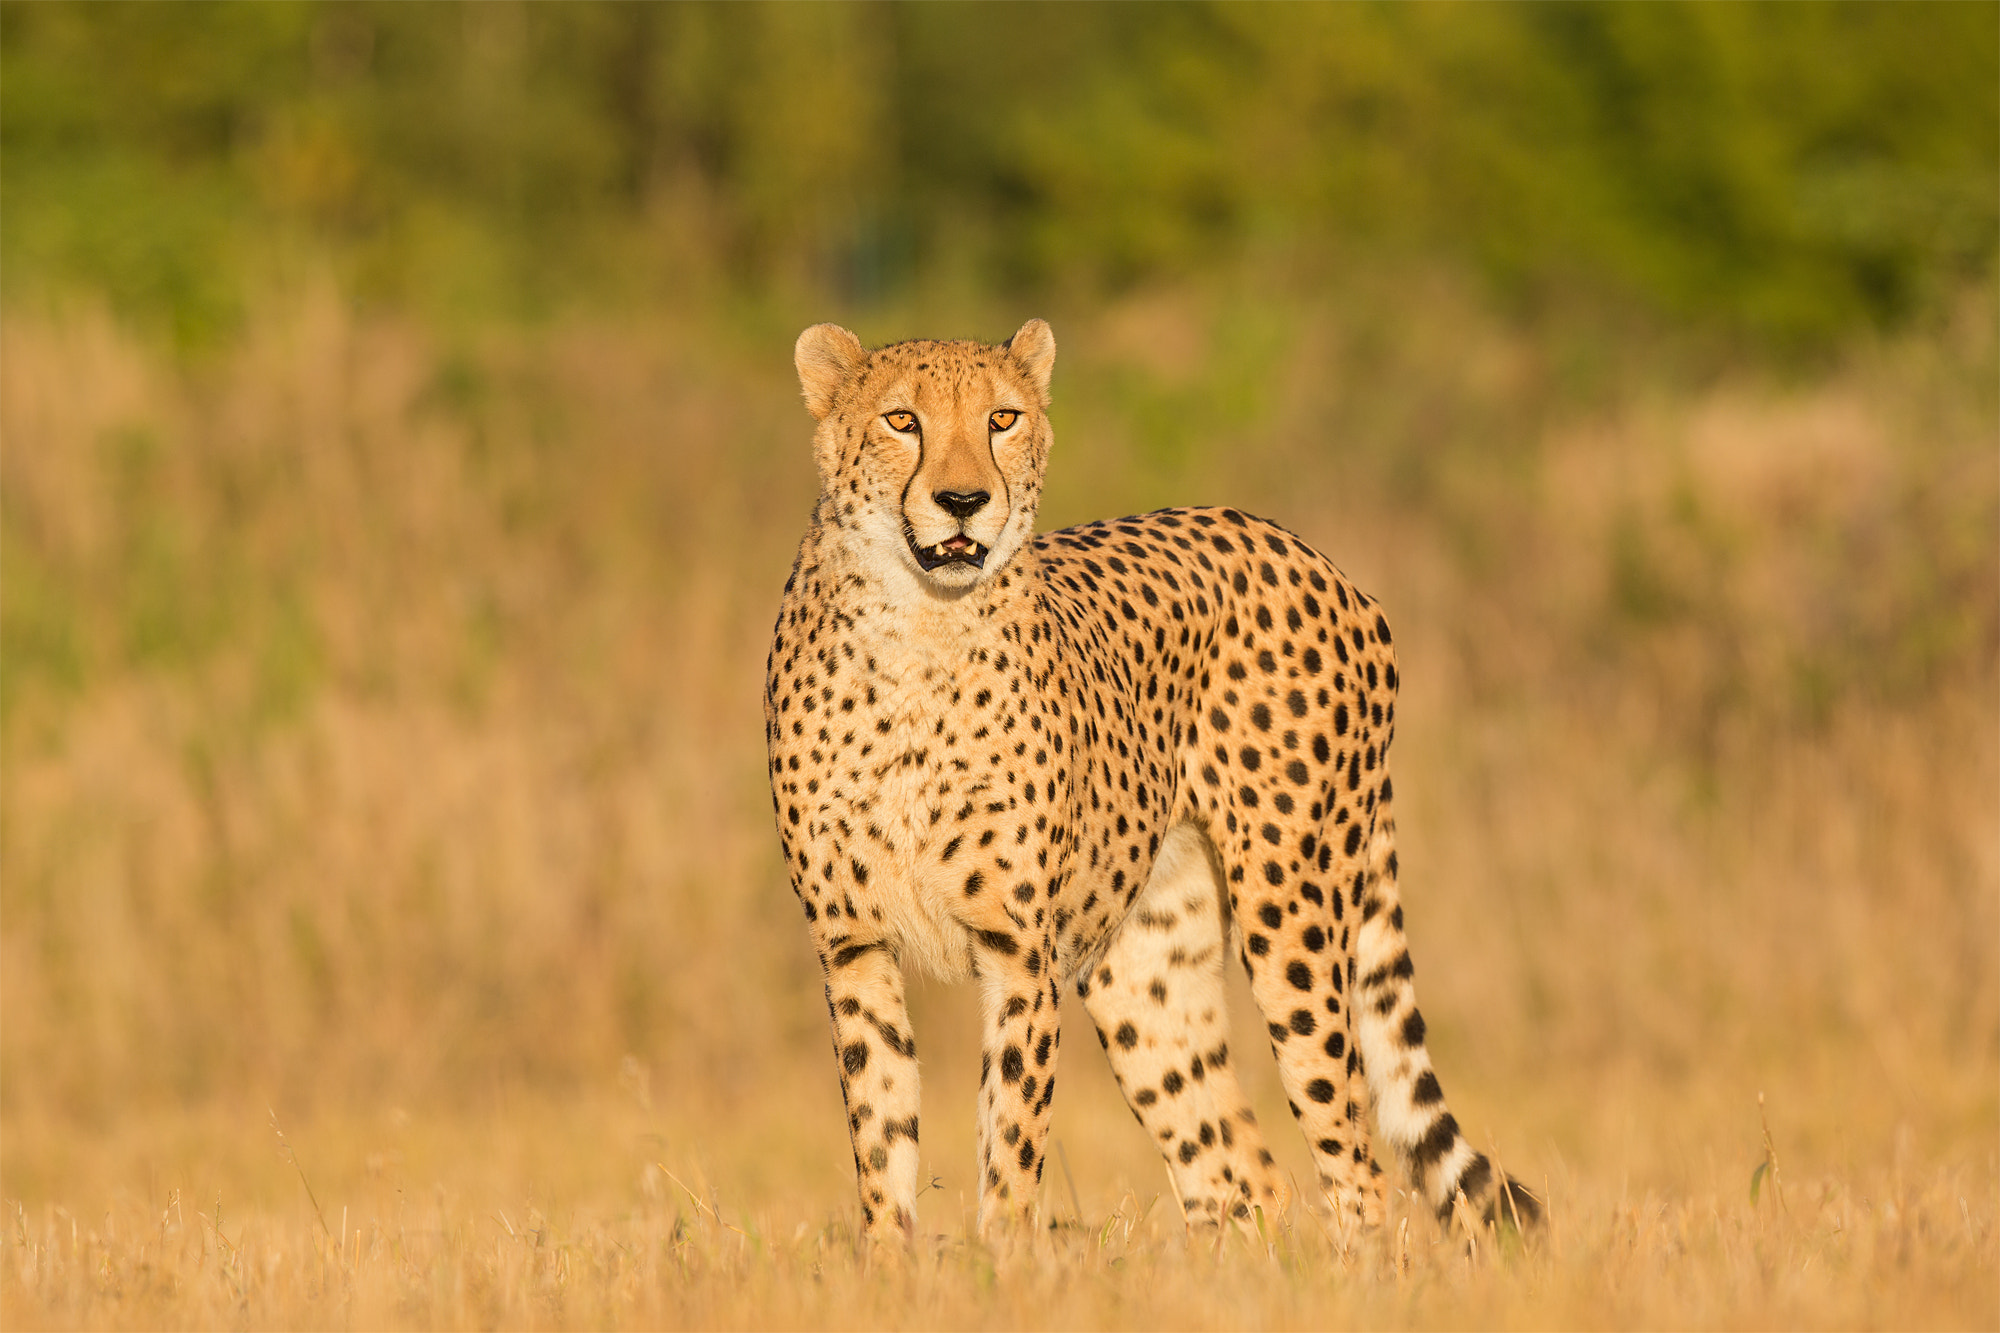 Photograph Cheetah by Milan Zygmunt on 500px